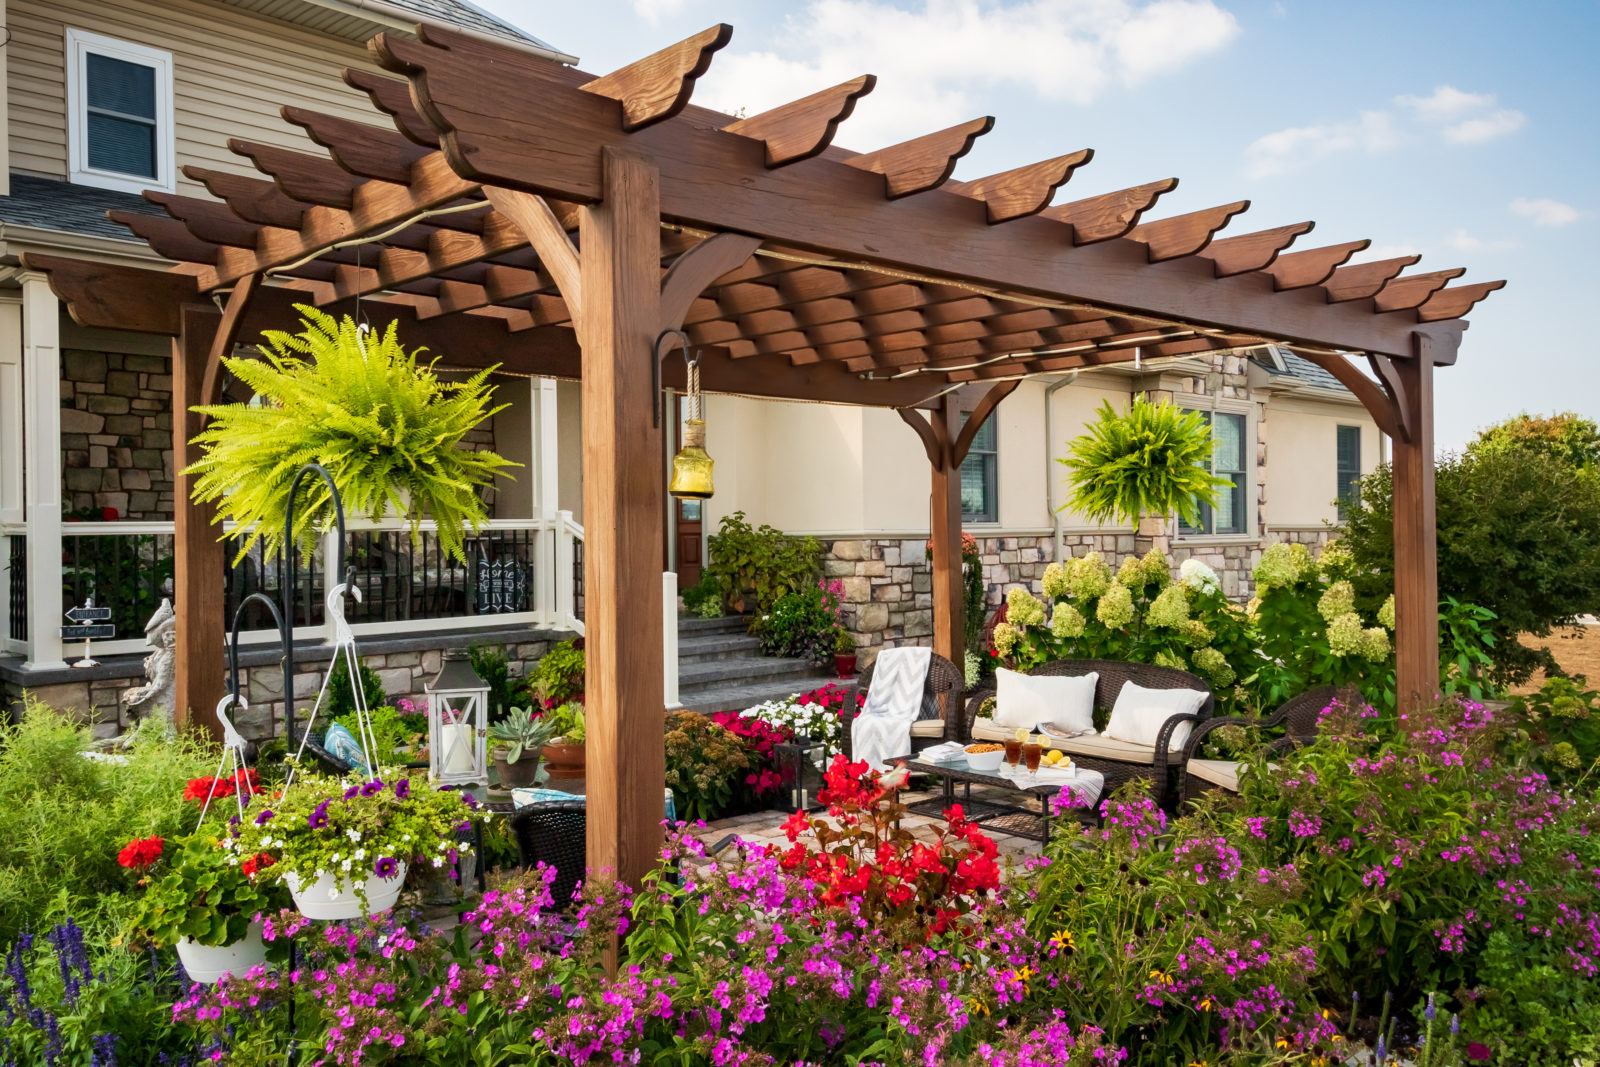 what is a the purpose of a pergola